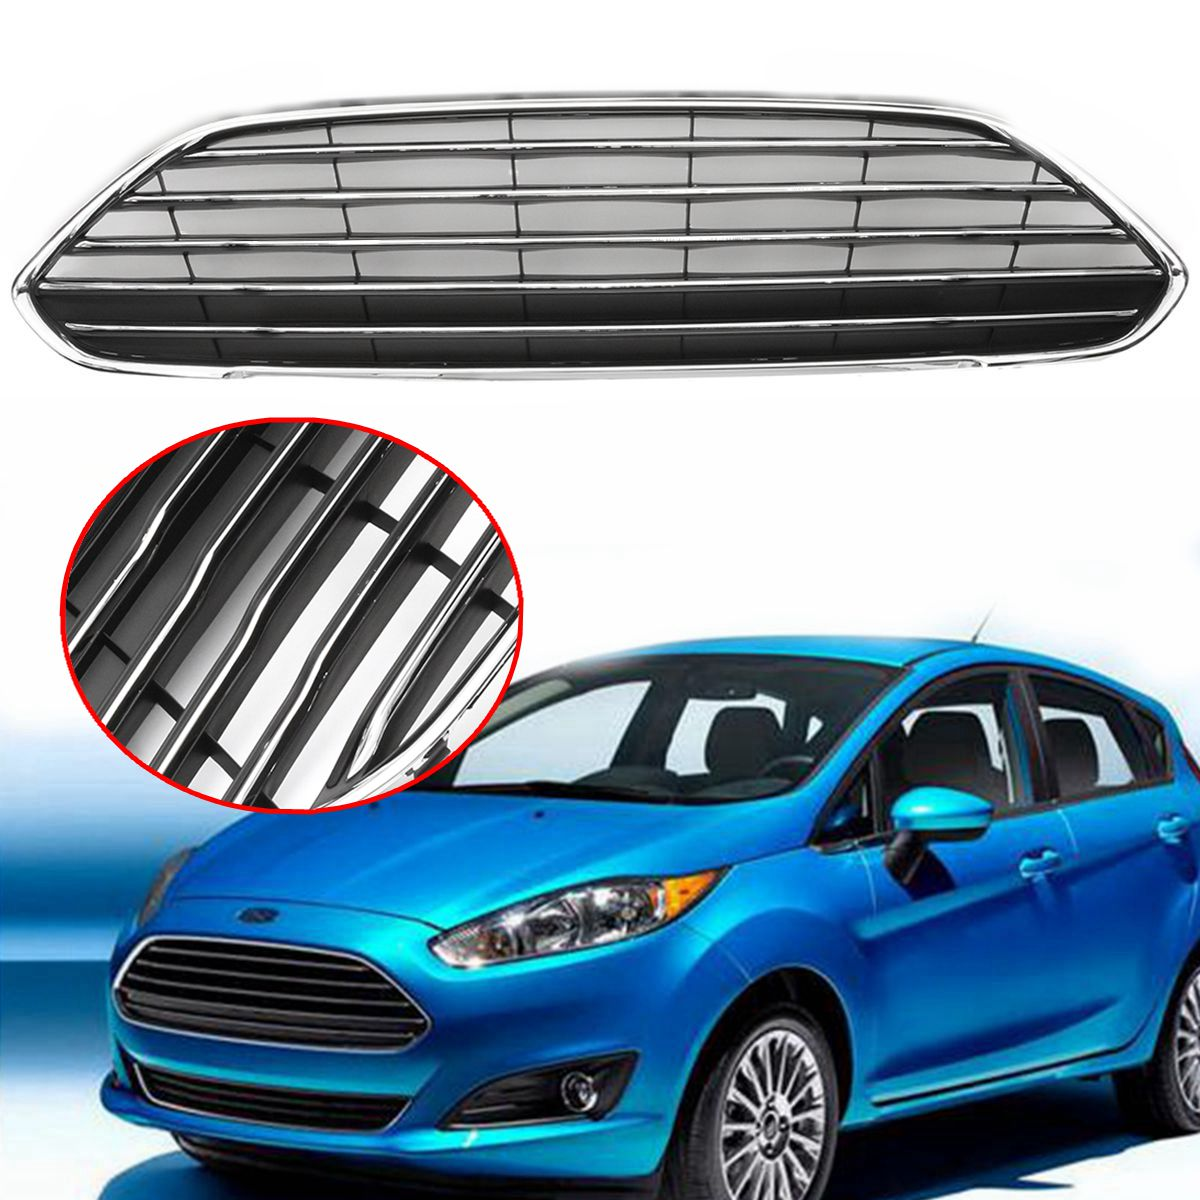 Front bumper radiator centre grille panel trim fit for ford fiesta 2013 2016